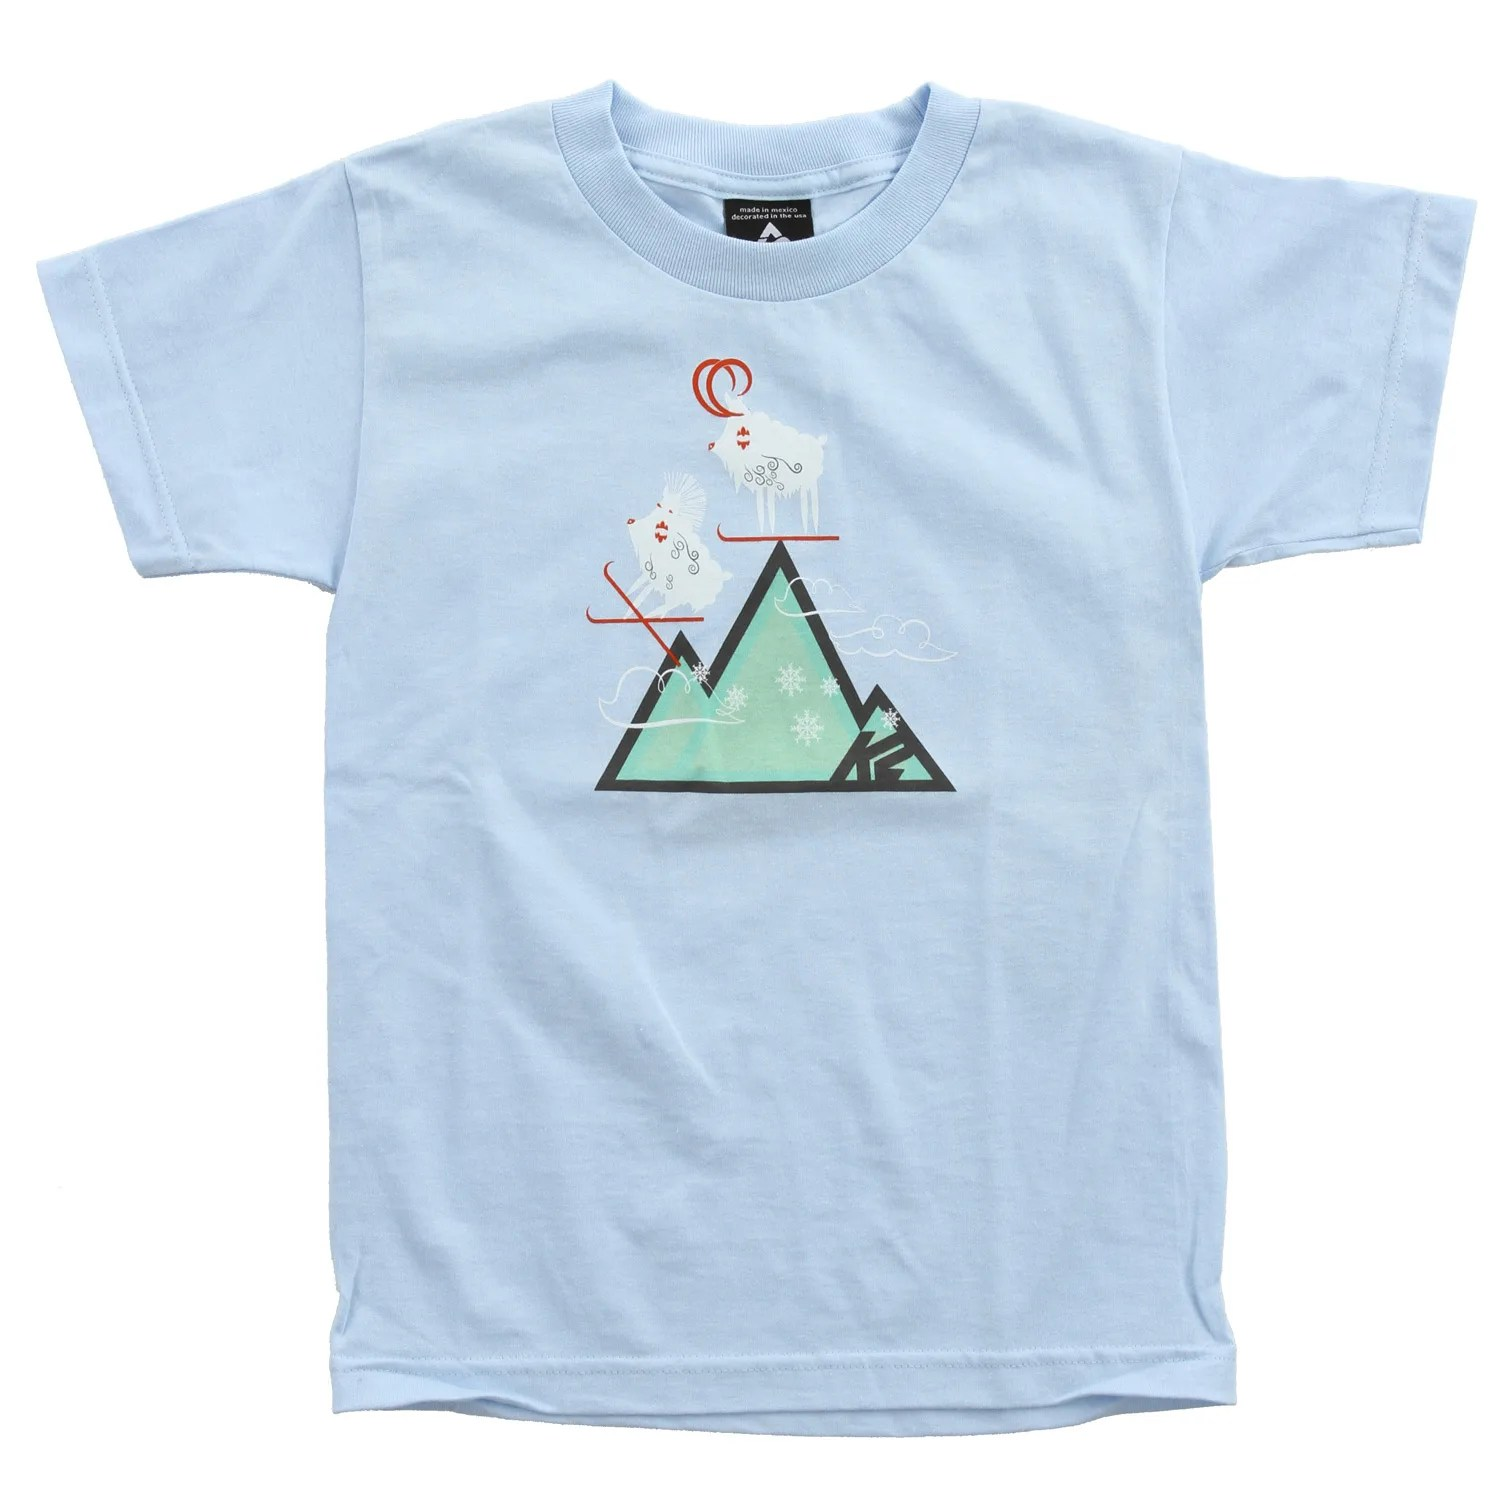 K2 Ski On Sale K2 Mountain Grom T-shirt - Girls Up To 60% Off